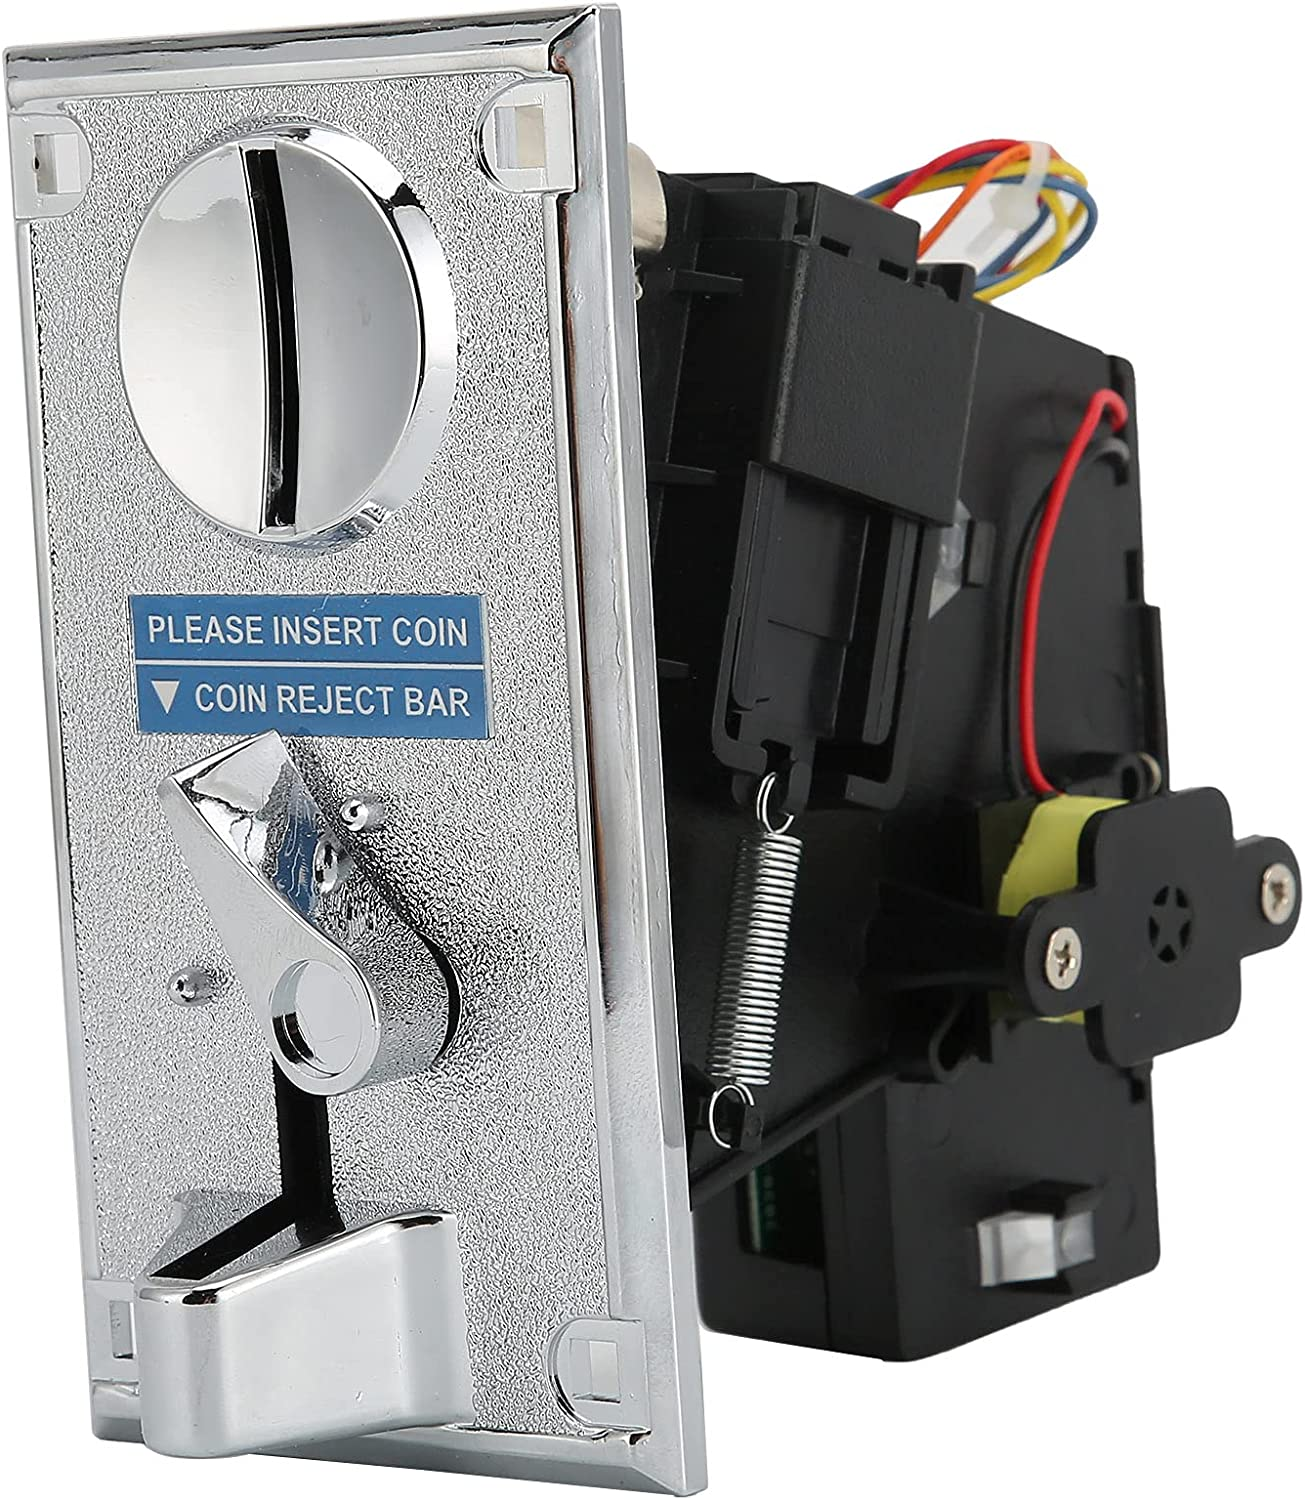 Zopsc-1 Coins Industry No. 1 Selector Acceptor CP Comparative Anti-Interference Max 55% OFF